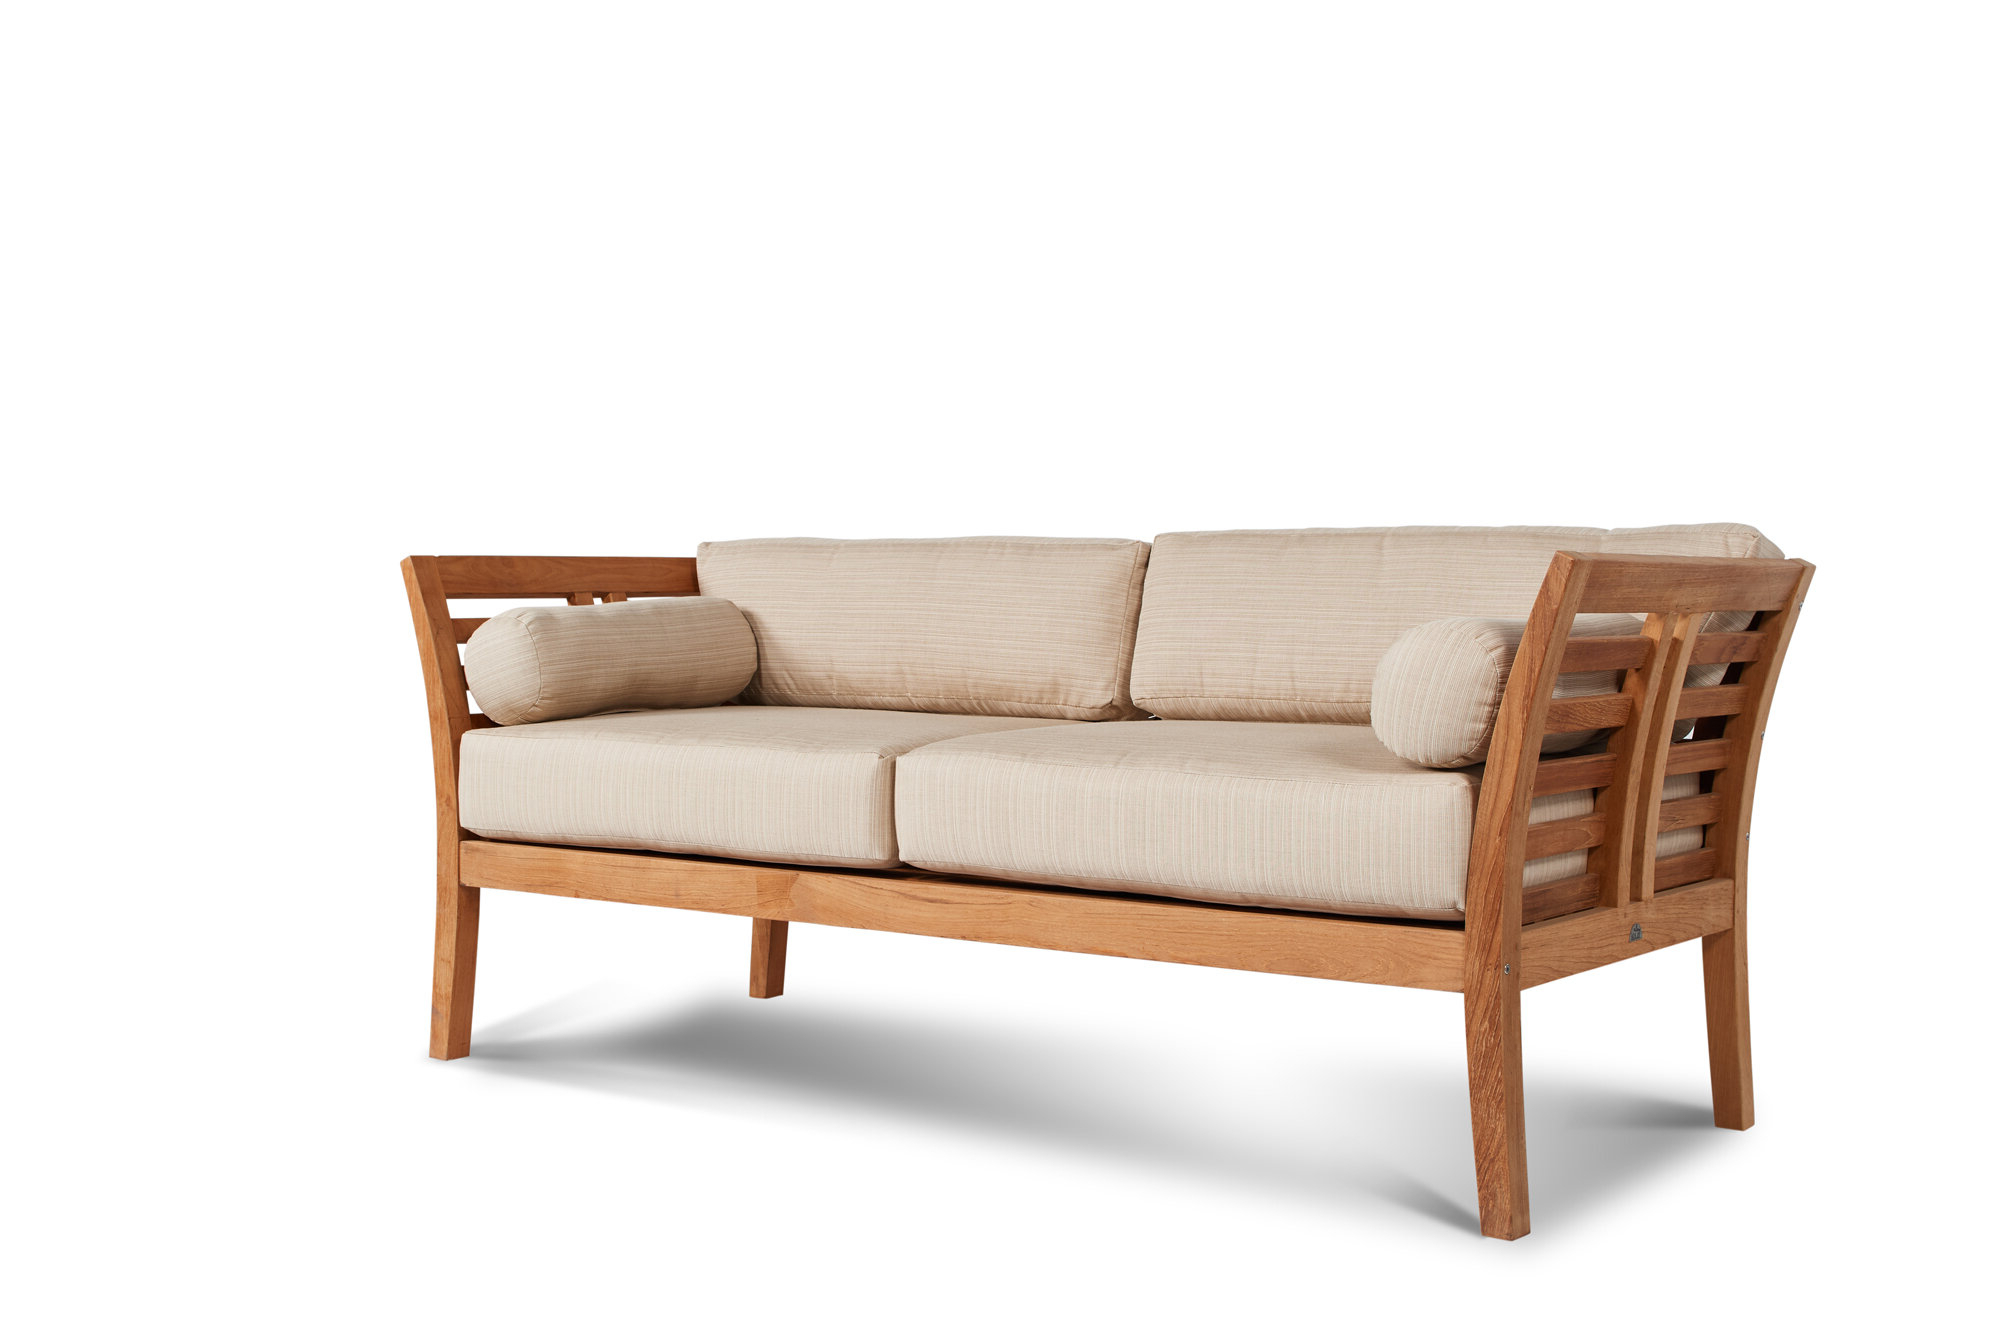 Brecht Patio Sectionals With Cushions In Most Up To Date Fleischer Teak Patio Sofa With Sunbrella Cushions (View 12 of 25)